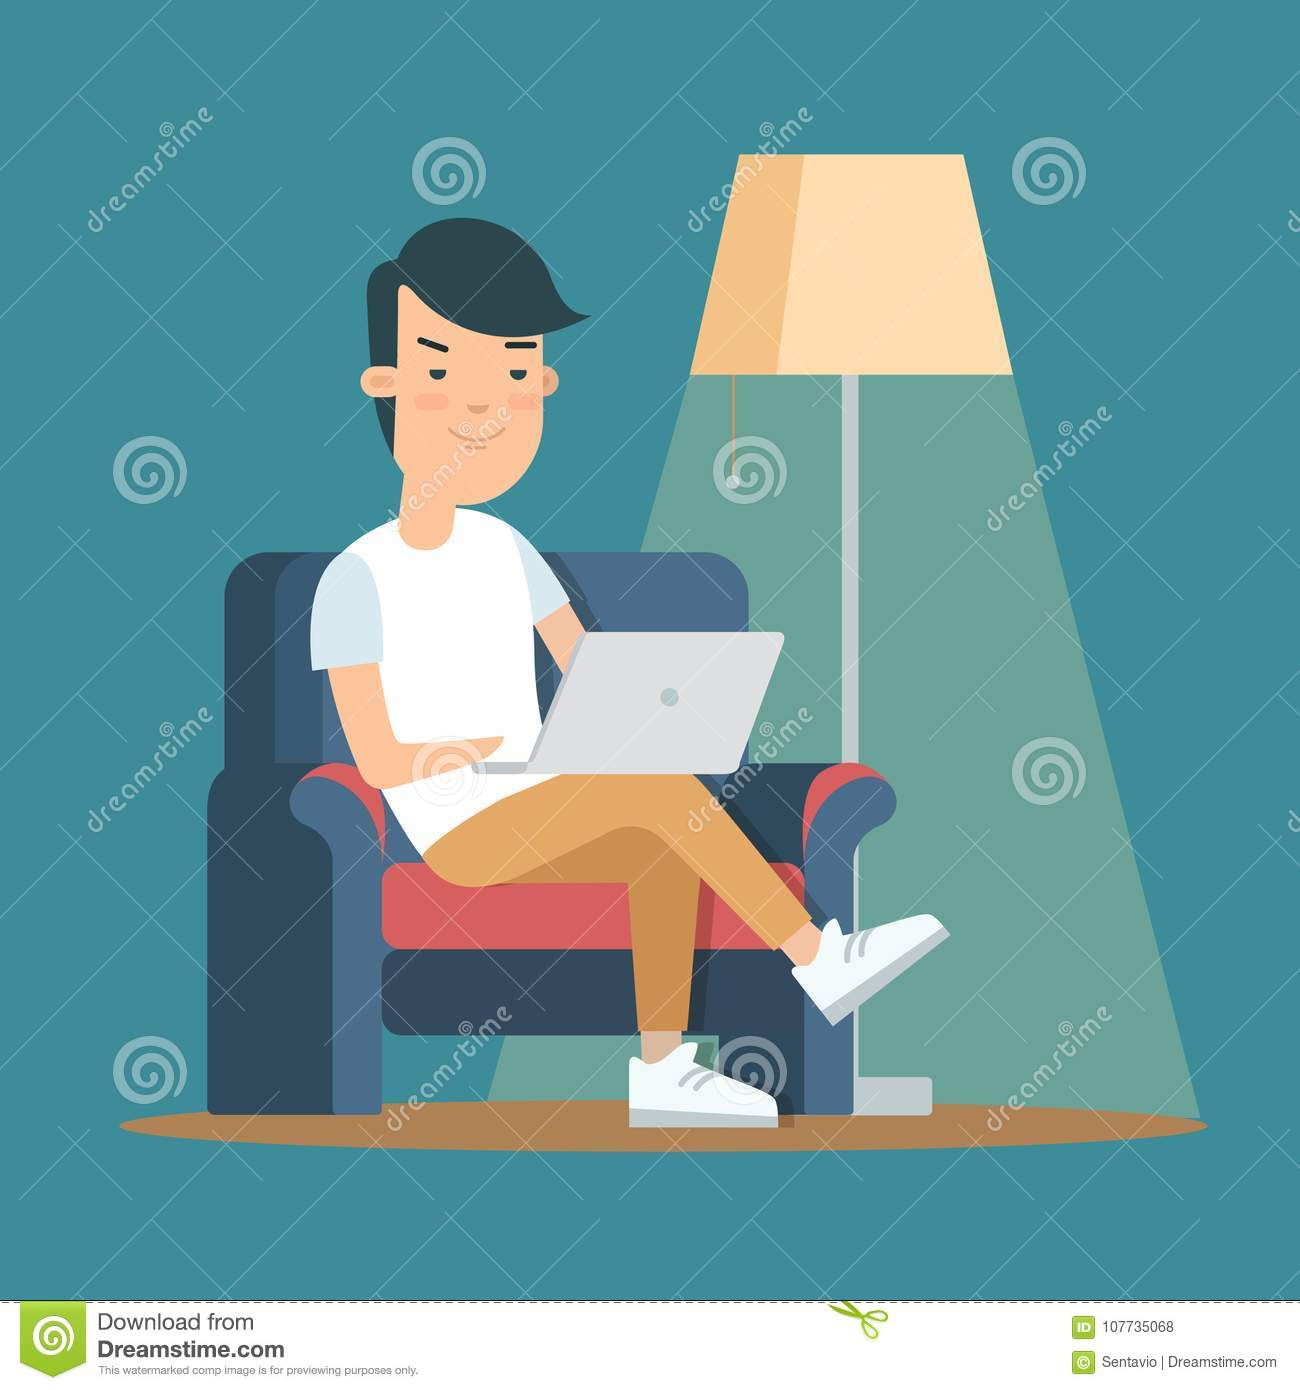 Flat Man Home Interior With Laptop Leisure Stock Illustration